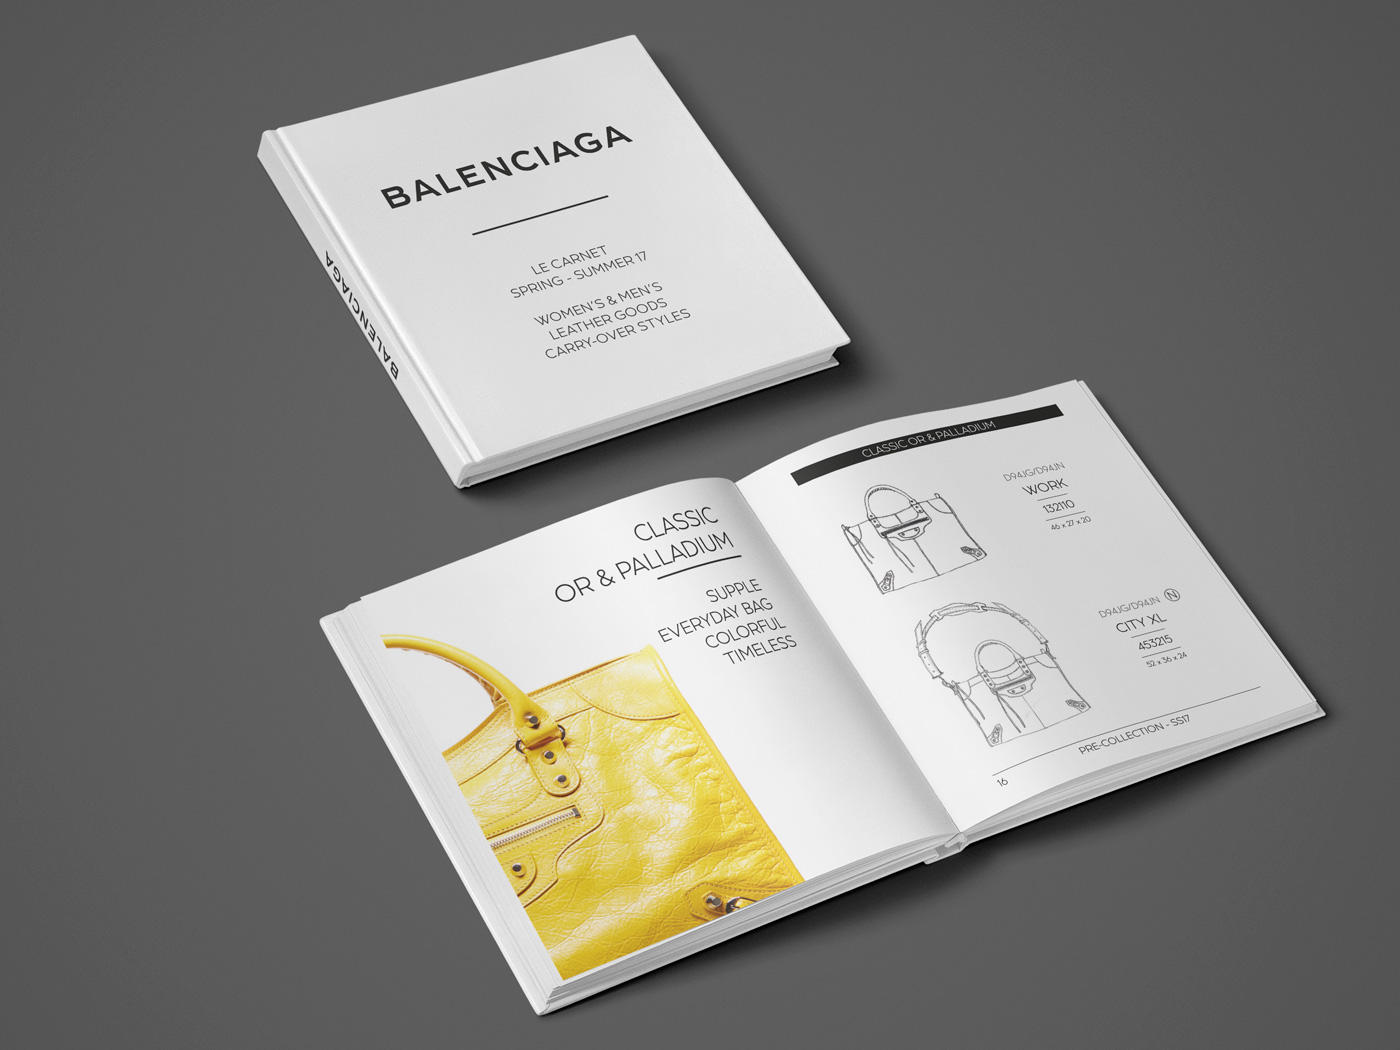 Balenciaga - Le Carnet des collections